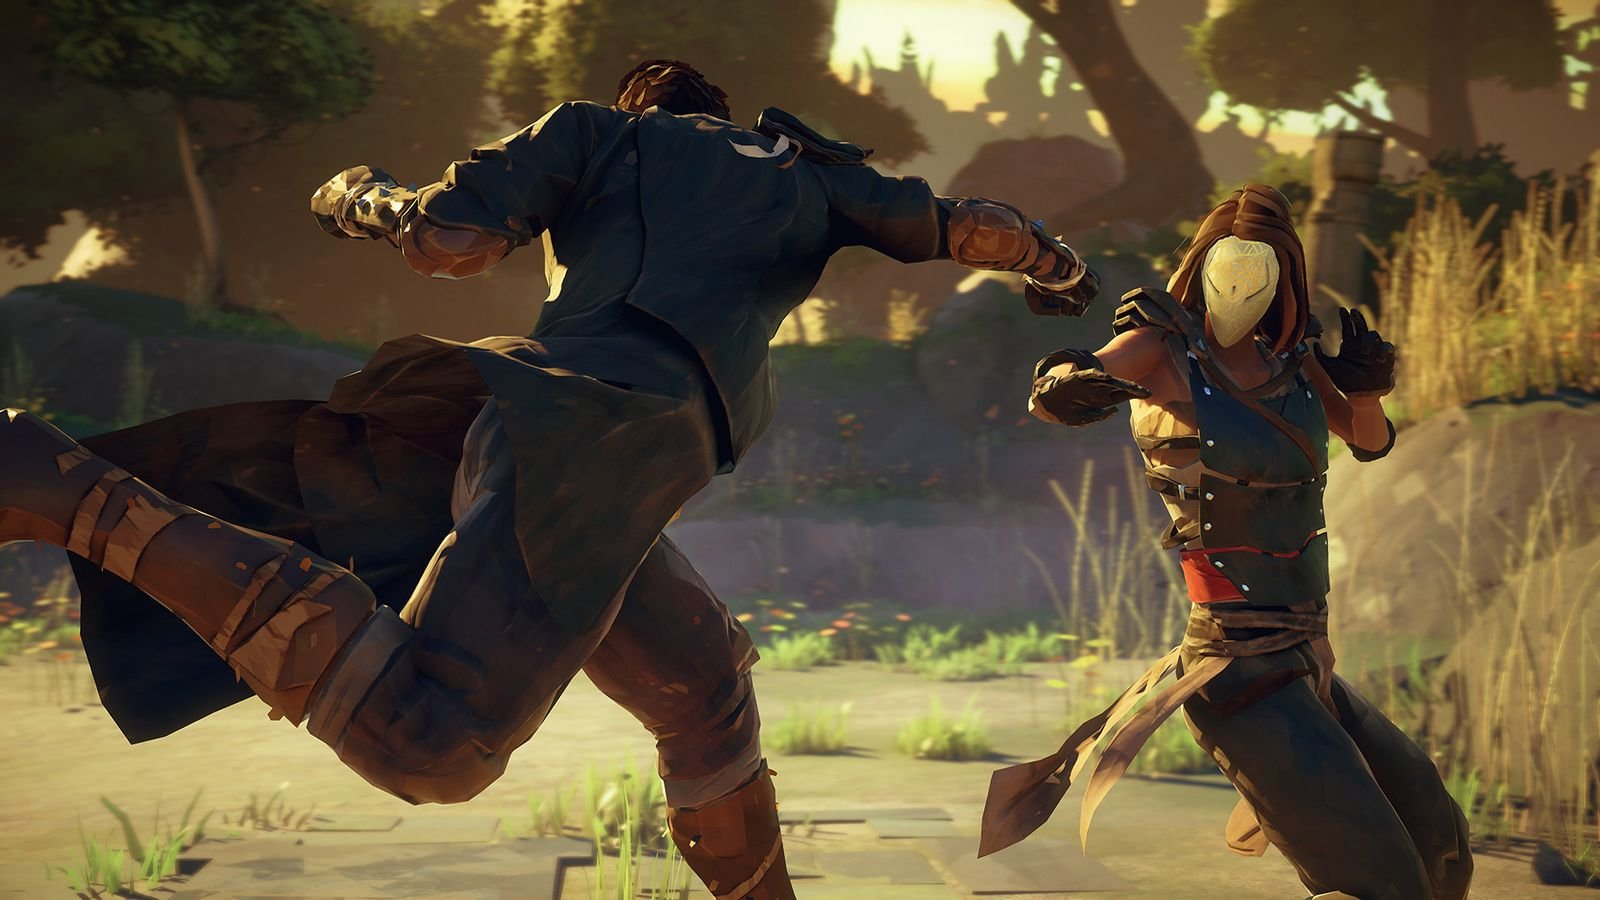 Absolver: A Solitary RPG Experience 2